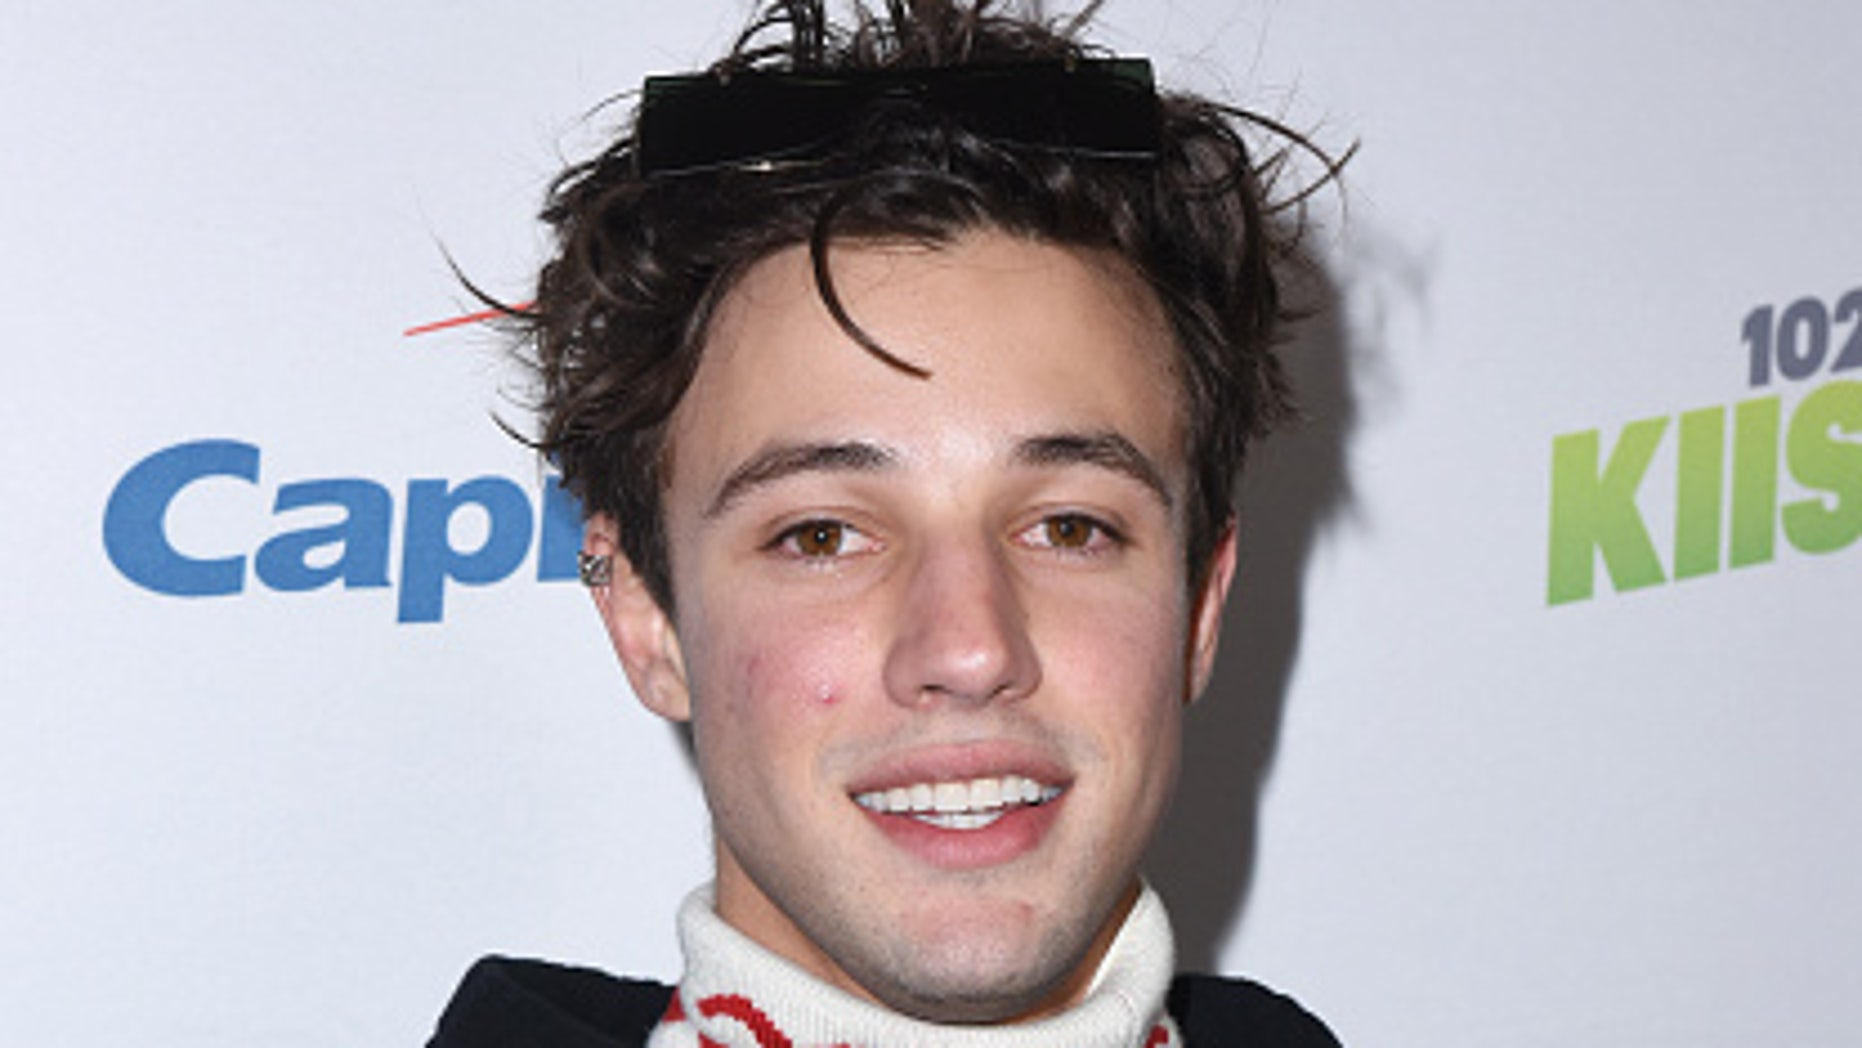 Cameron Dallas, 24, was arrested Saturday for allegedly punching a man in the face. (Getty Images)